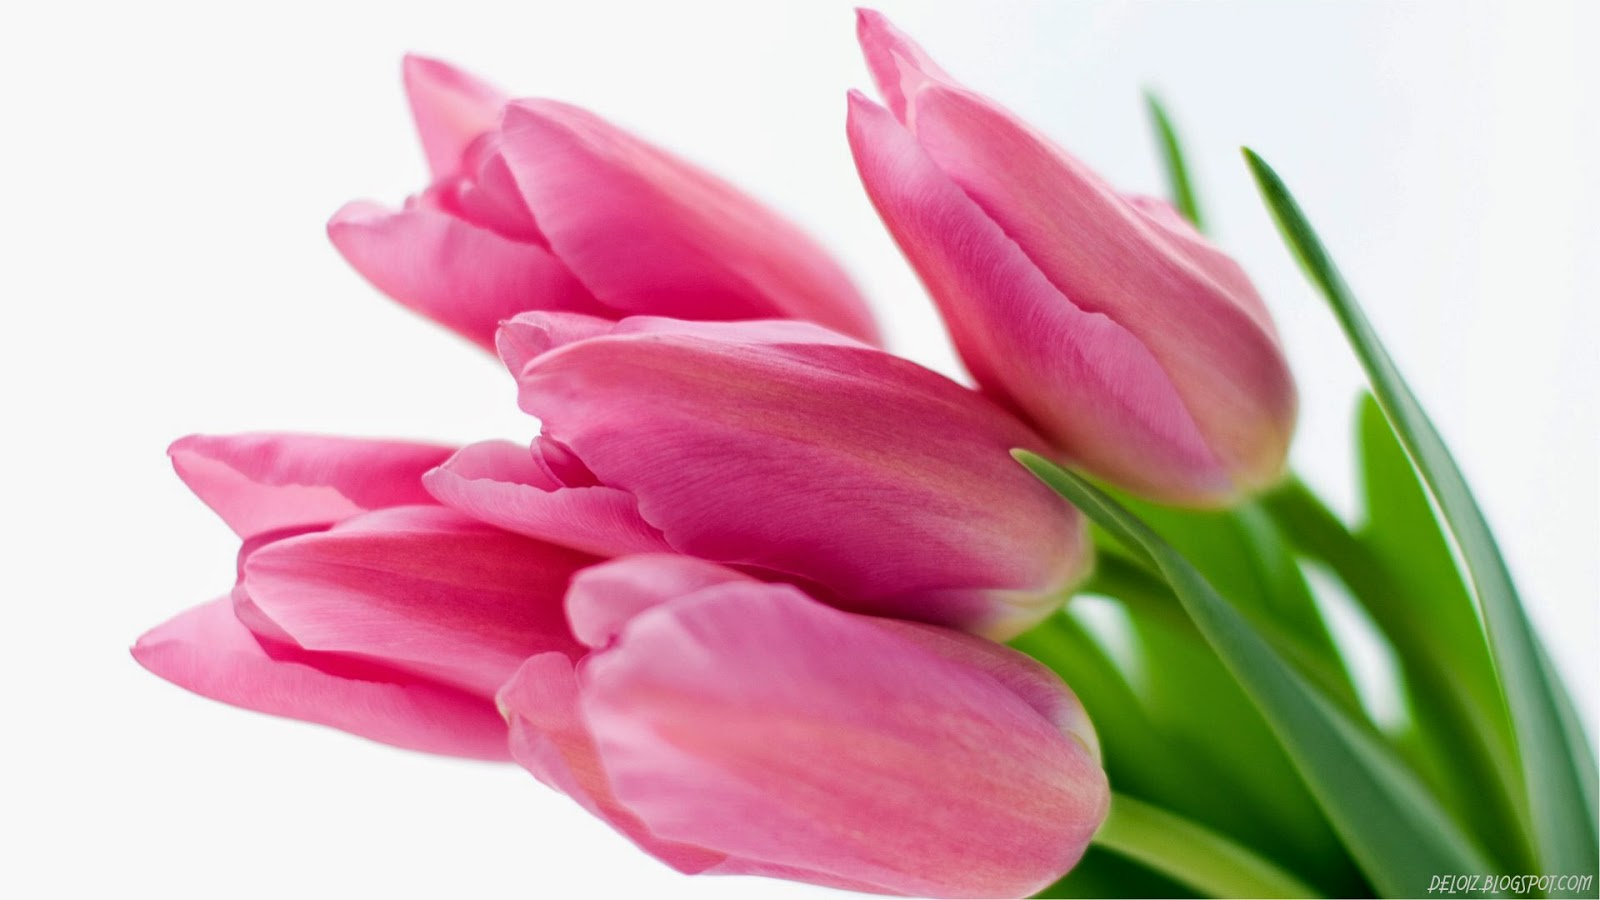 Wallpaper Bunga Tulip Pink